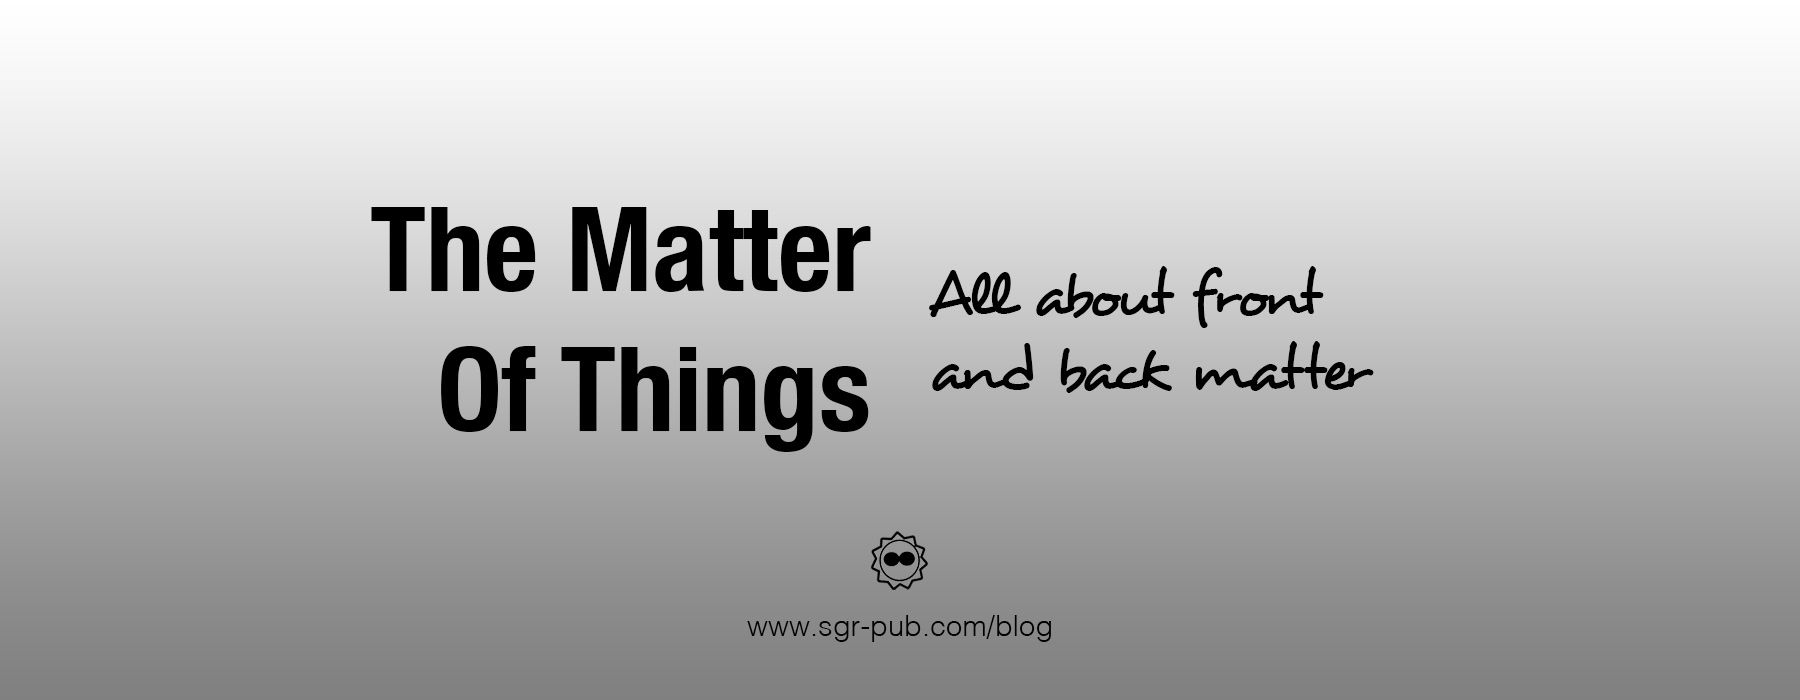 The Matter of Things: All About Front and Back Matter